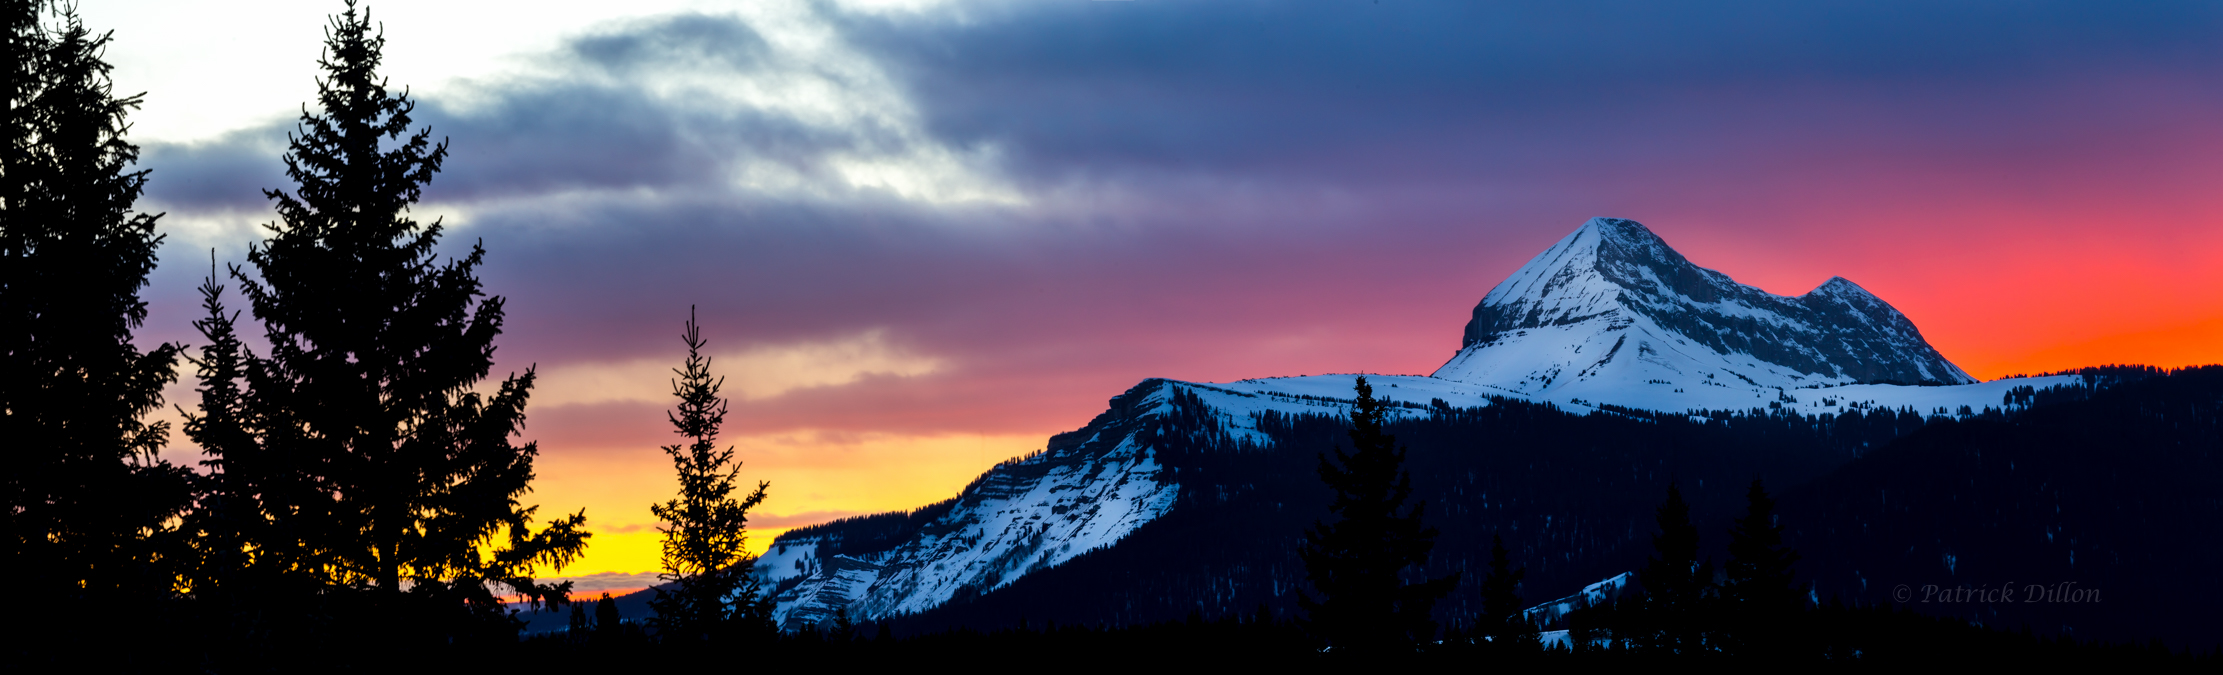 North face Engineer Mountain sunset pano-